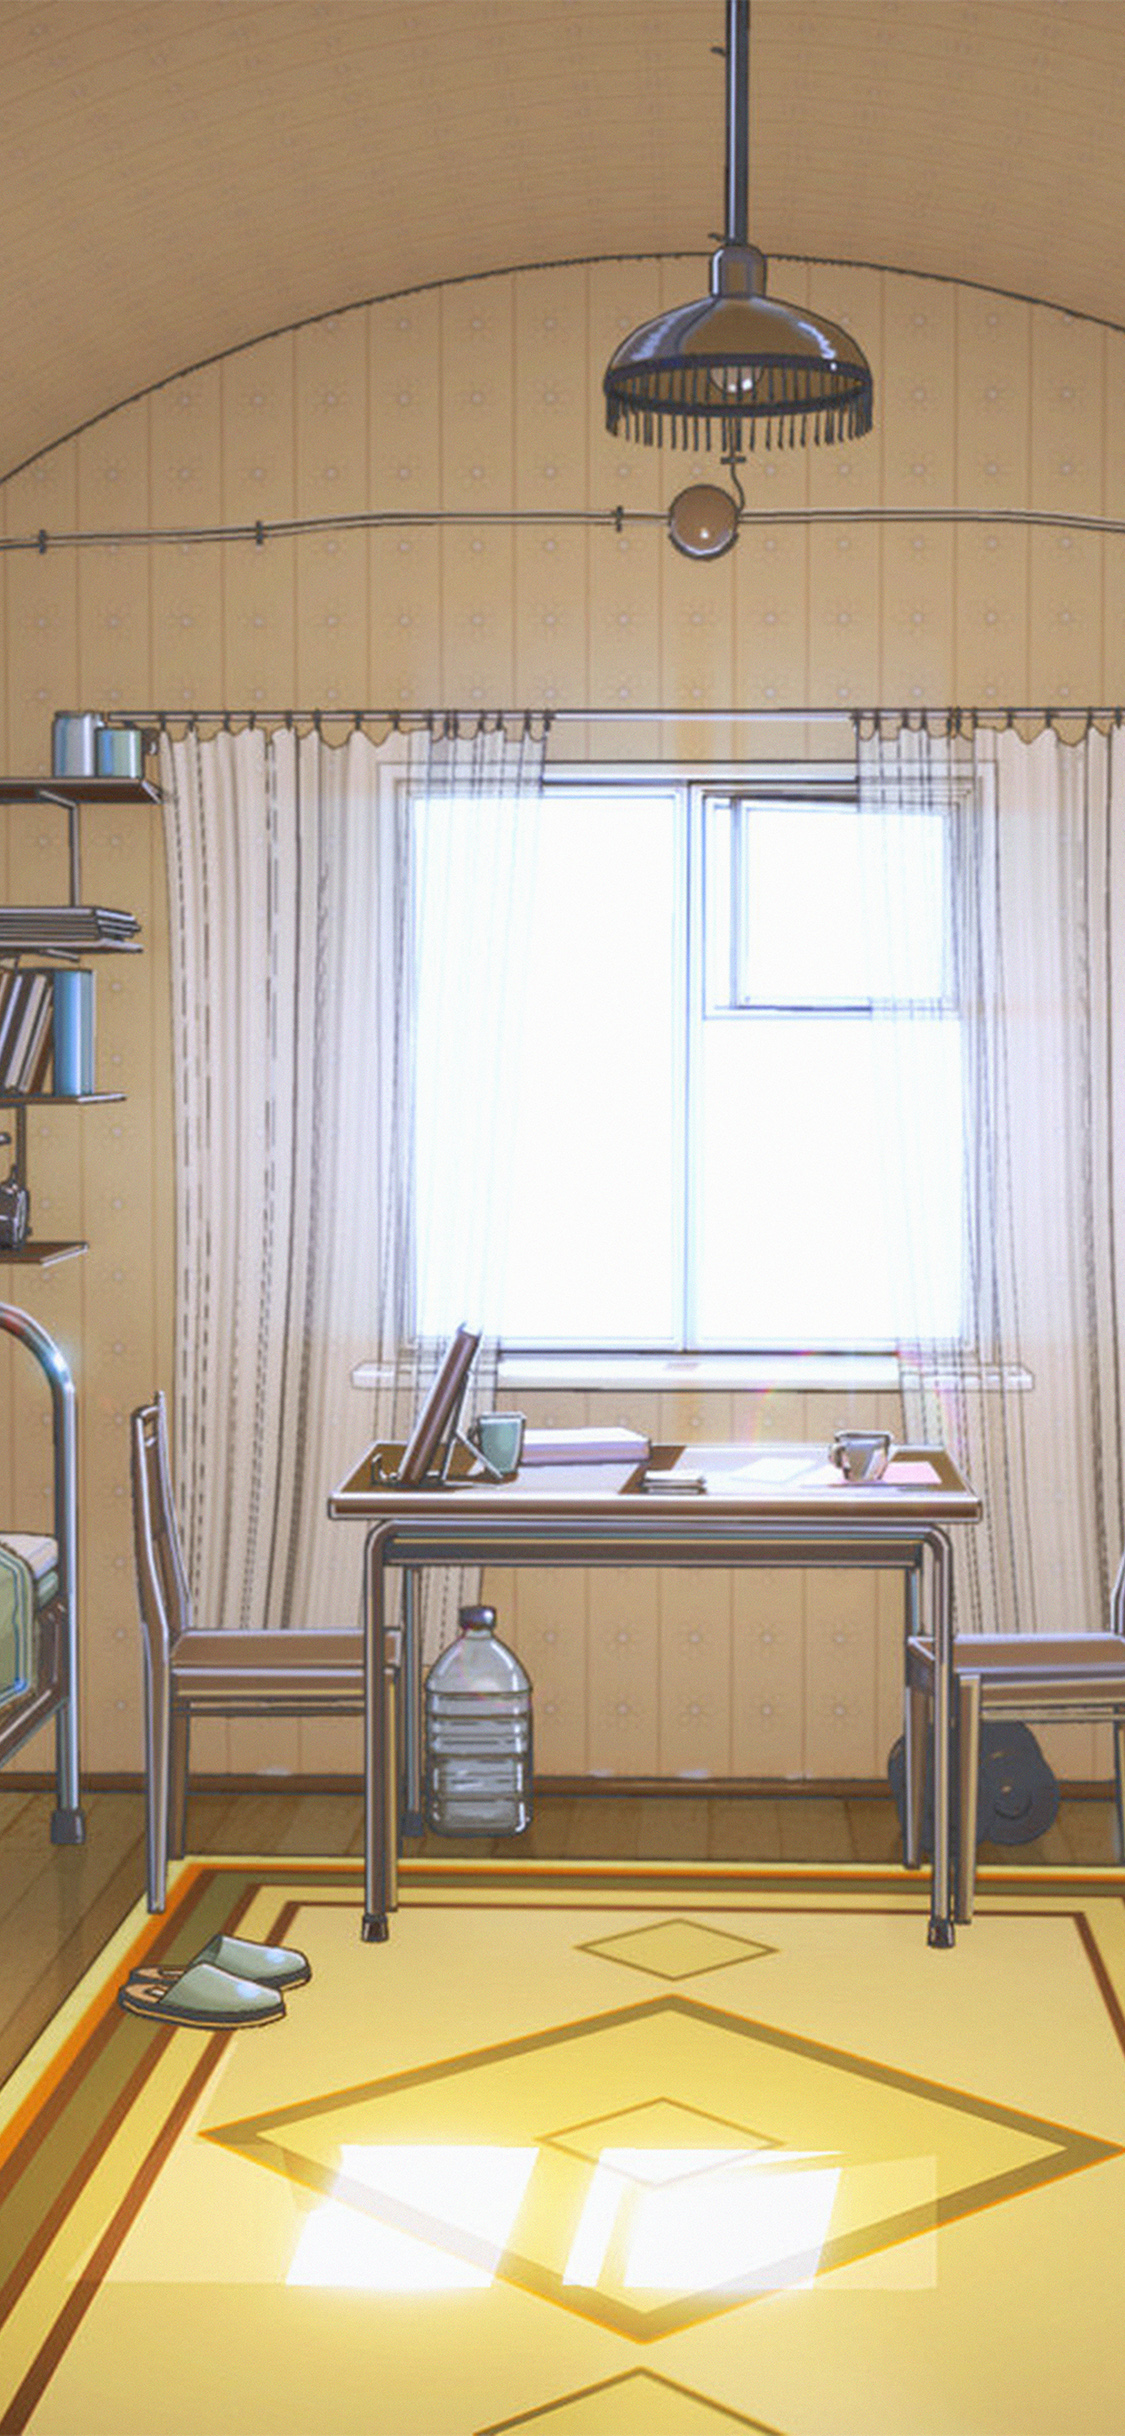 iPhoneXpapers.com-Apple-iPhone-wallpaper-av04-arseniy-chebynkin-room-illustration-art